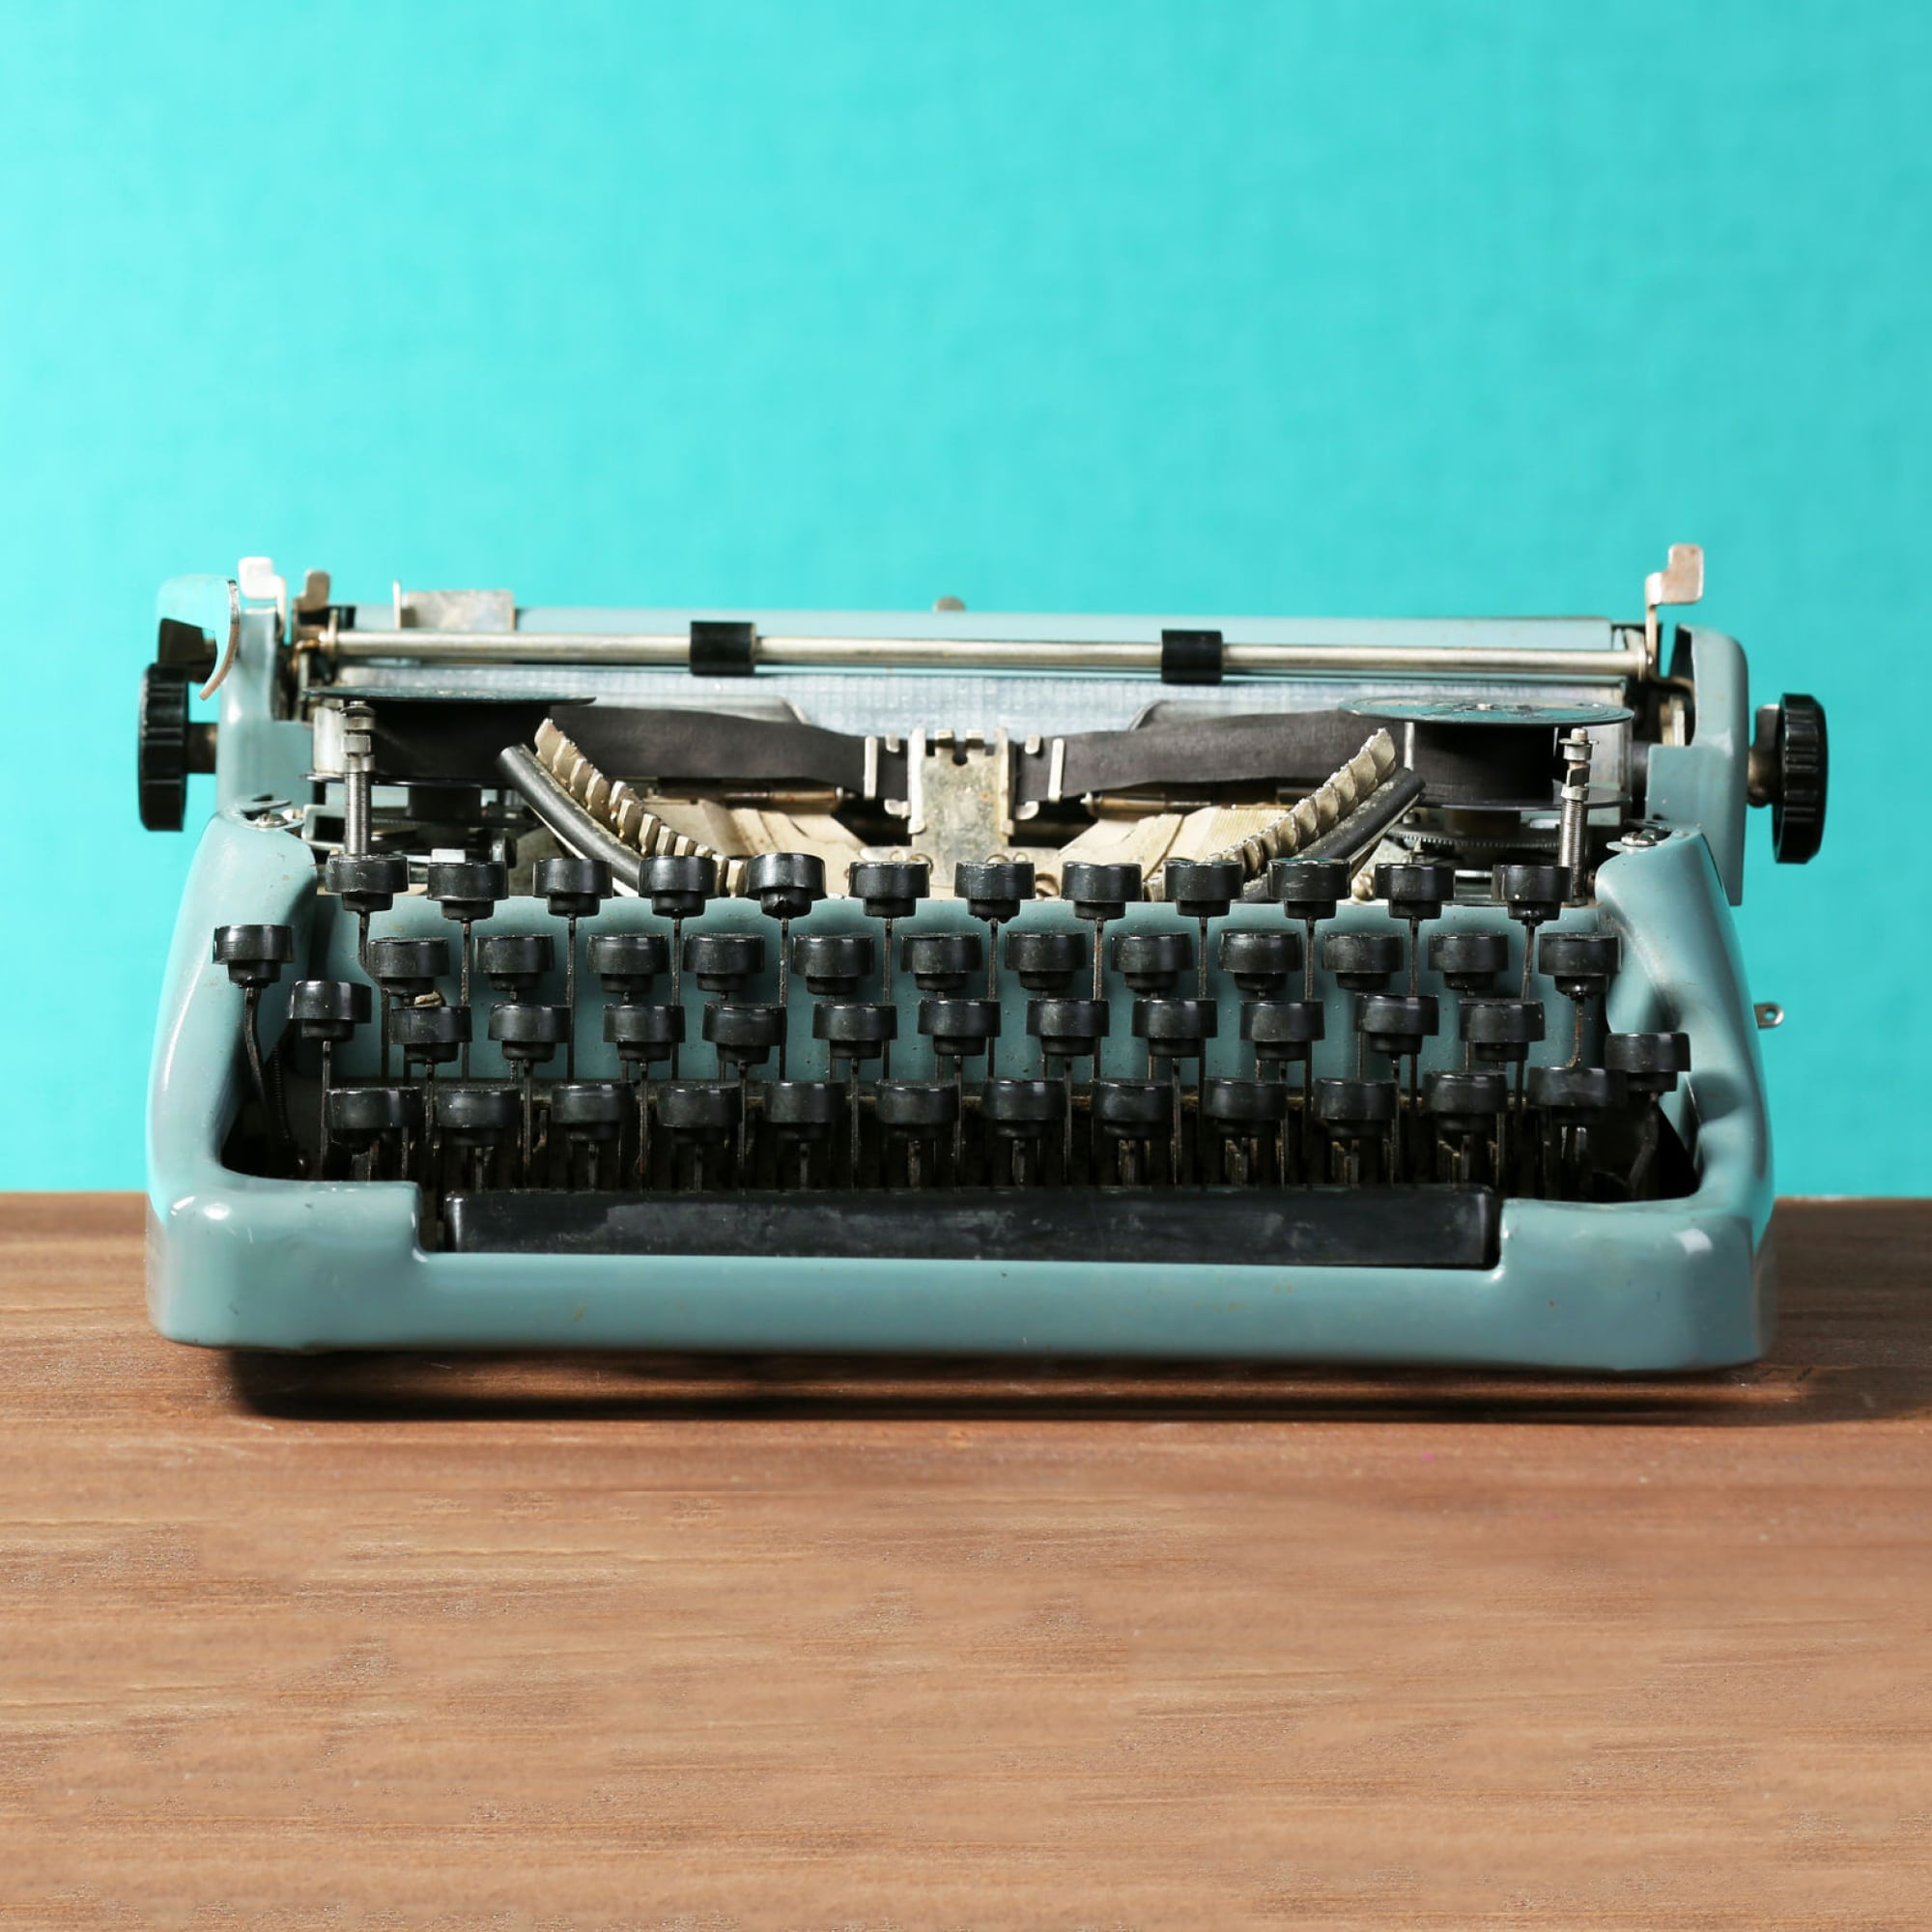 Finding The Courage To Write Your Own Story